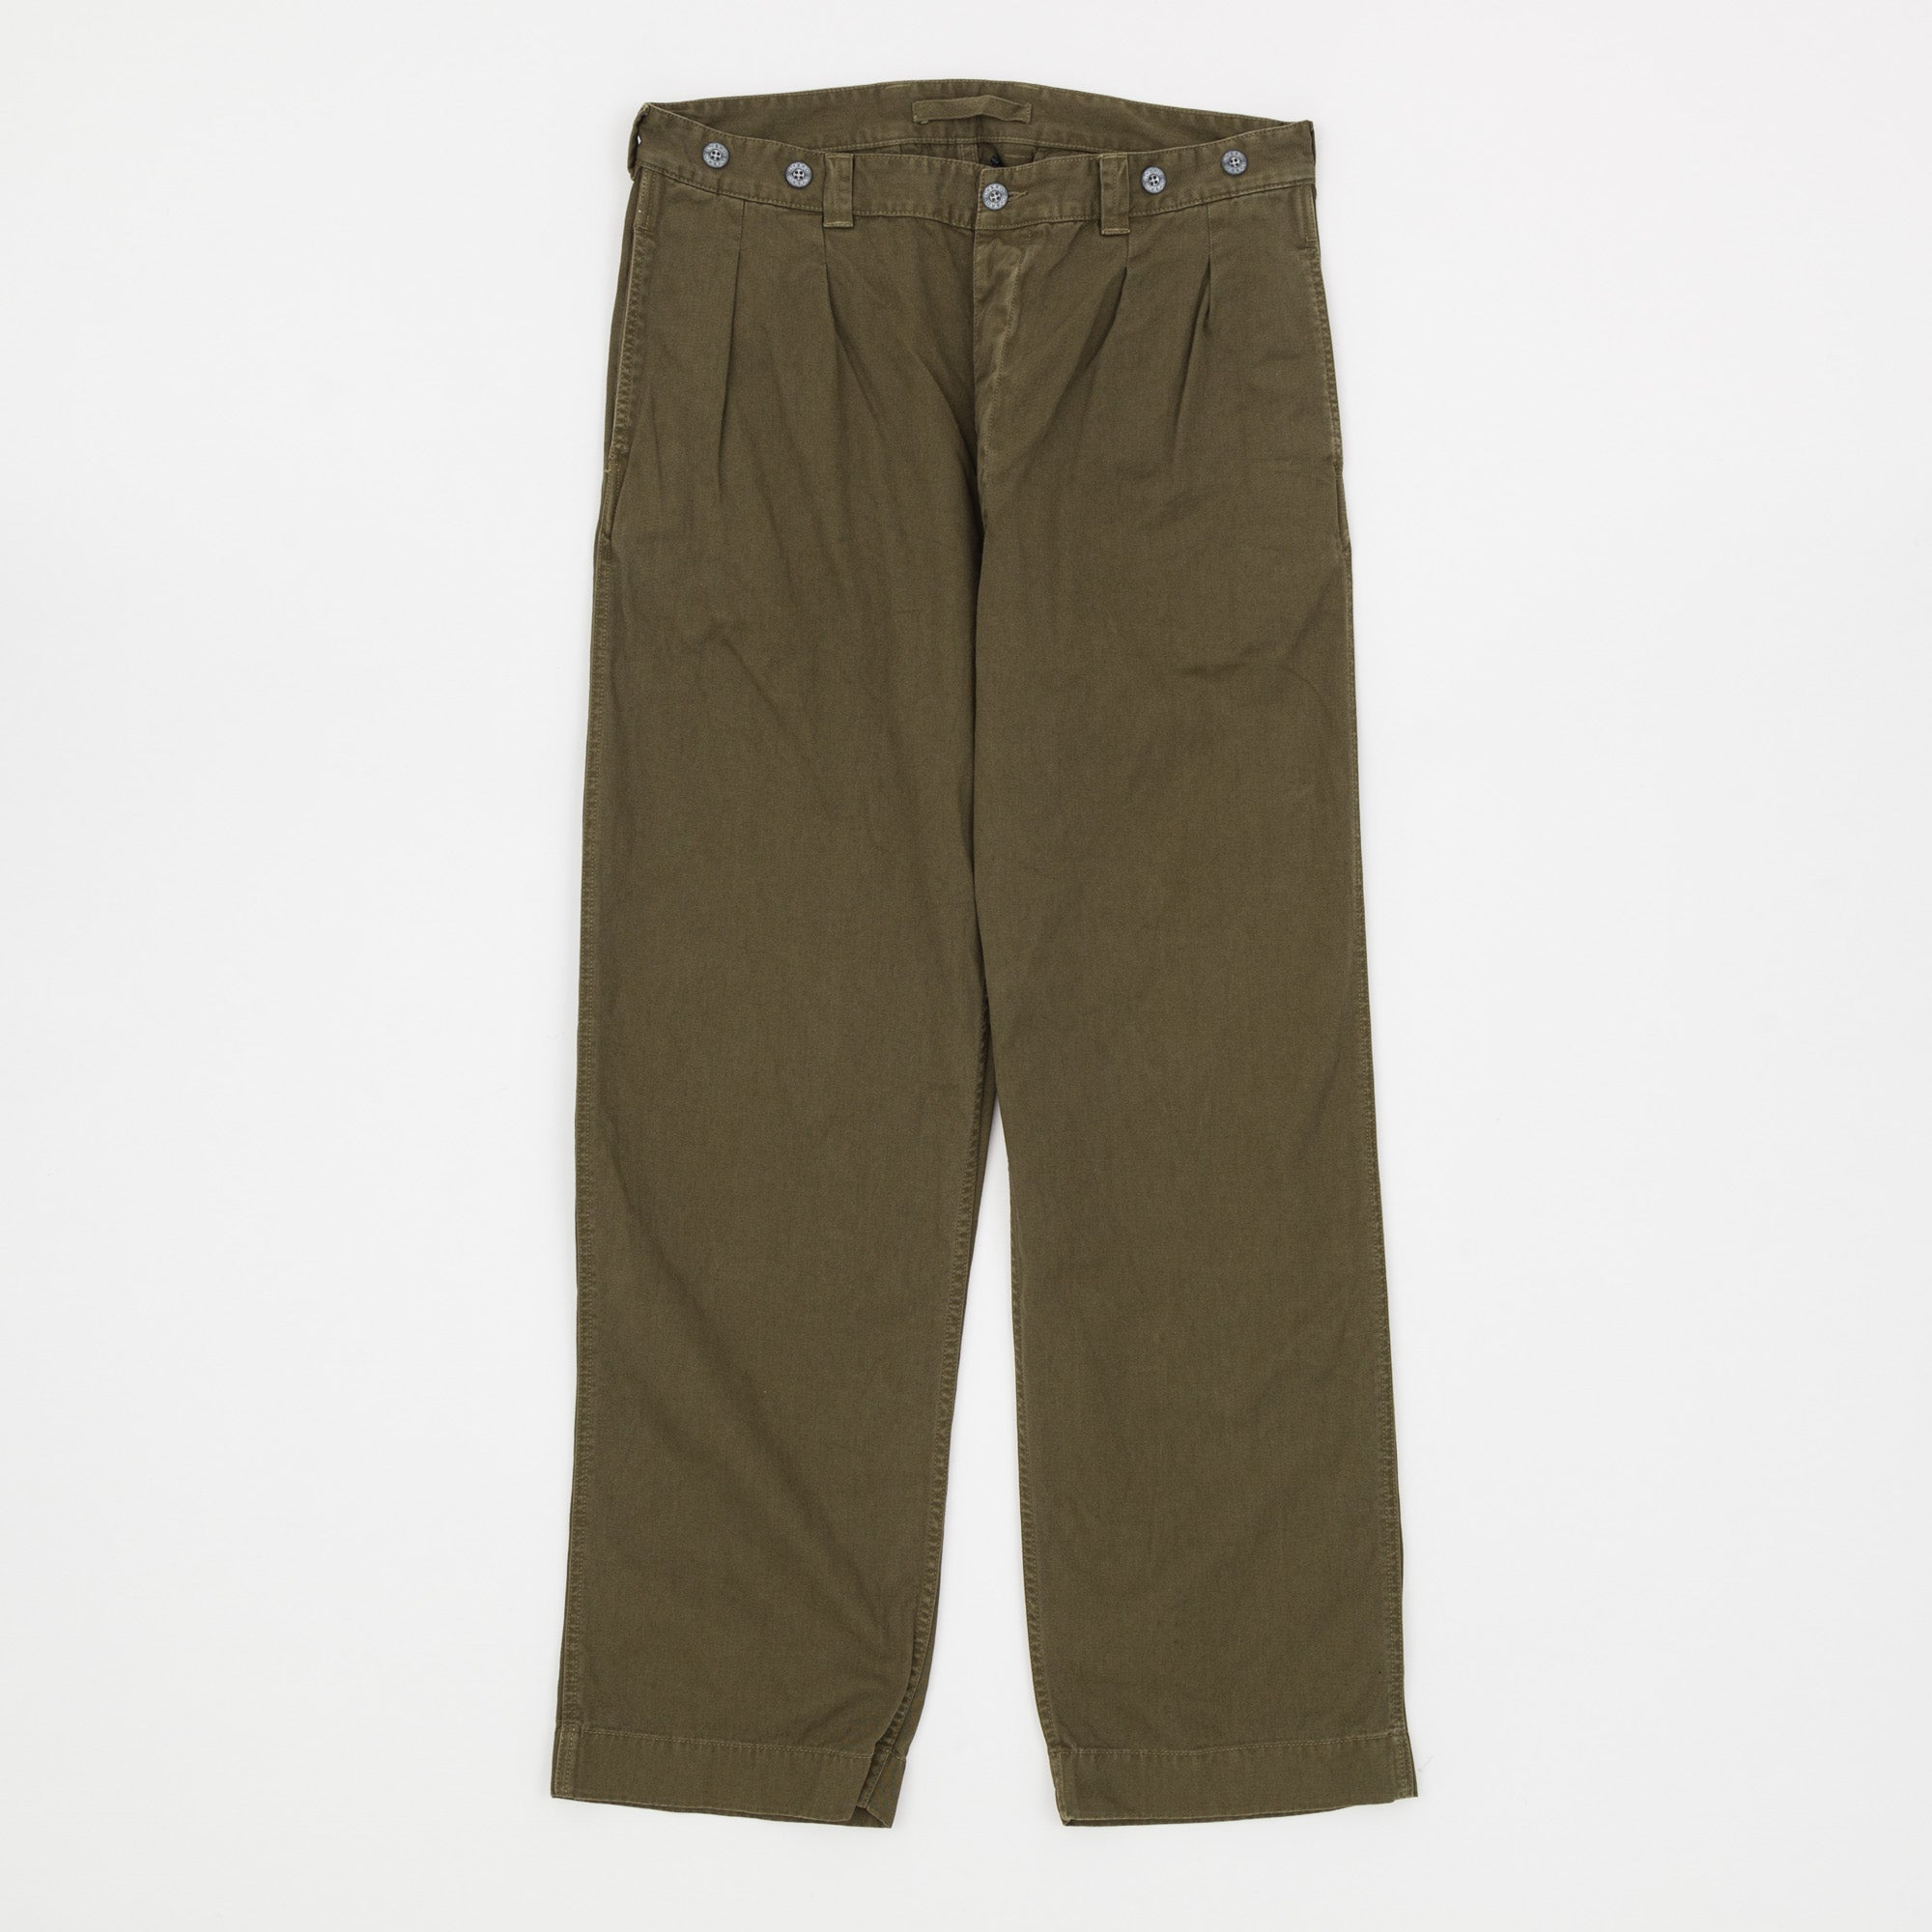 Nigel Cabourn x Lybro Army Pleated Chino